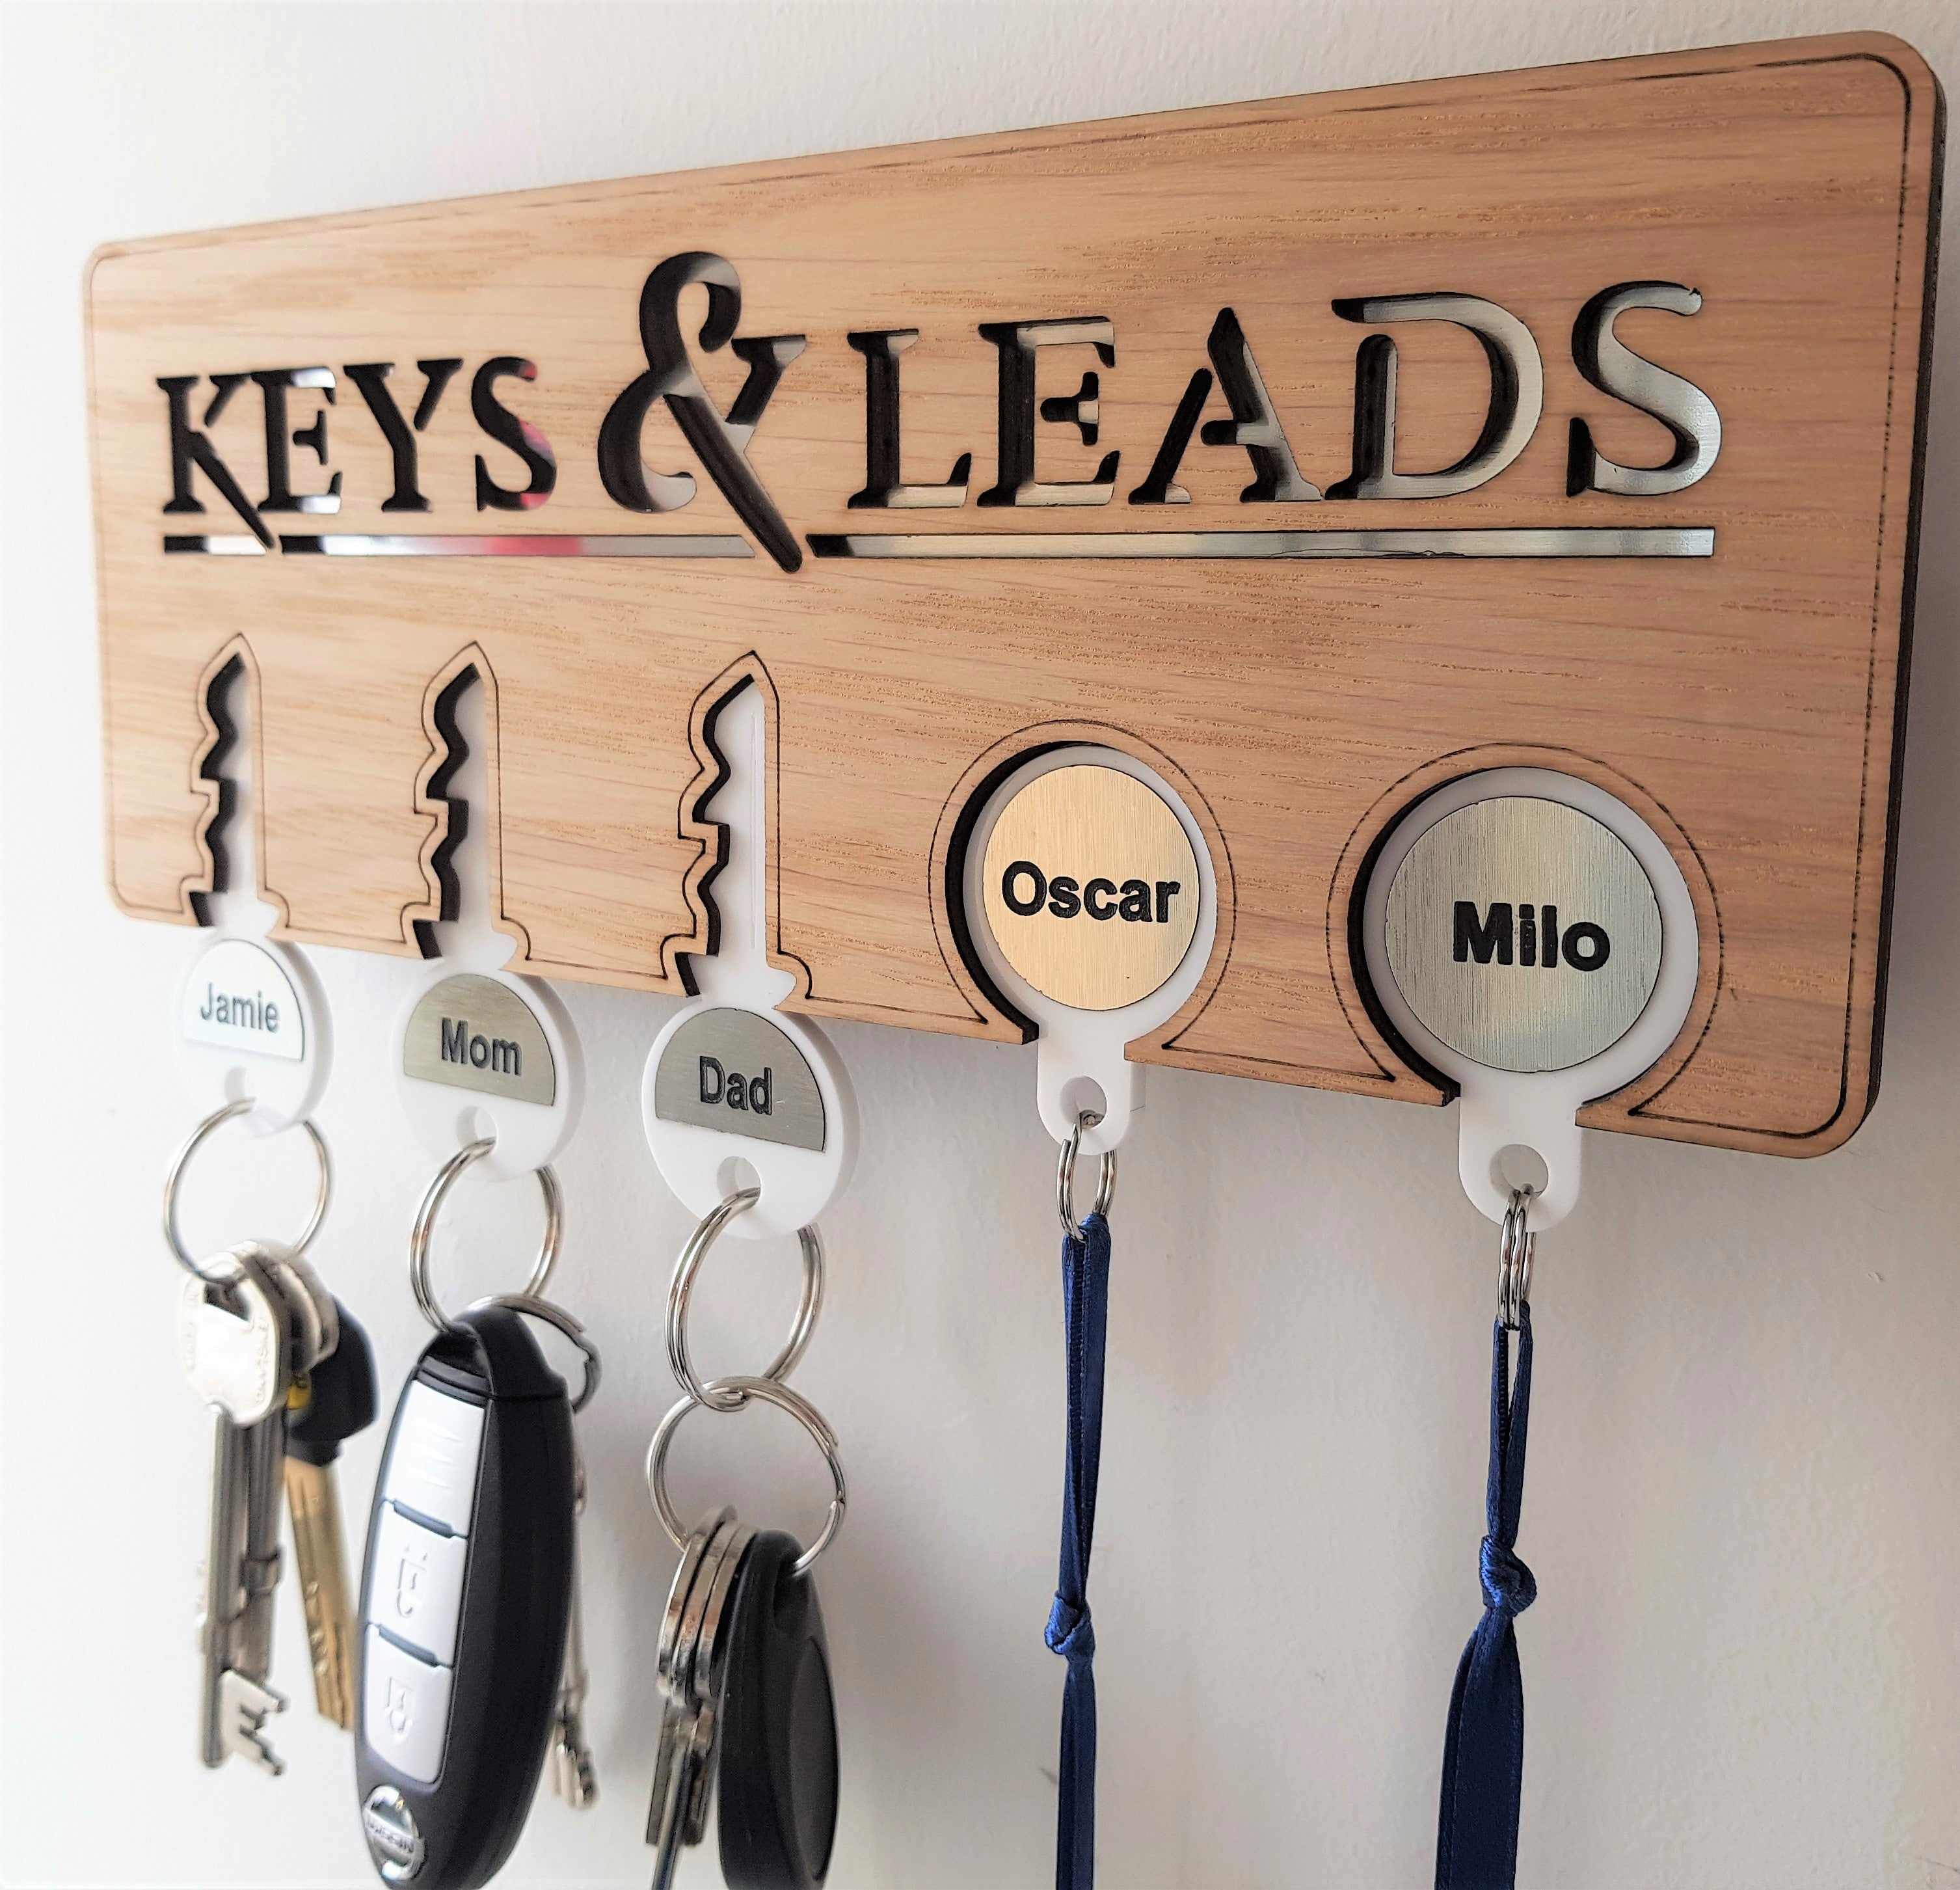 Key Holder - KR 5000 Keys n Leads